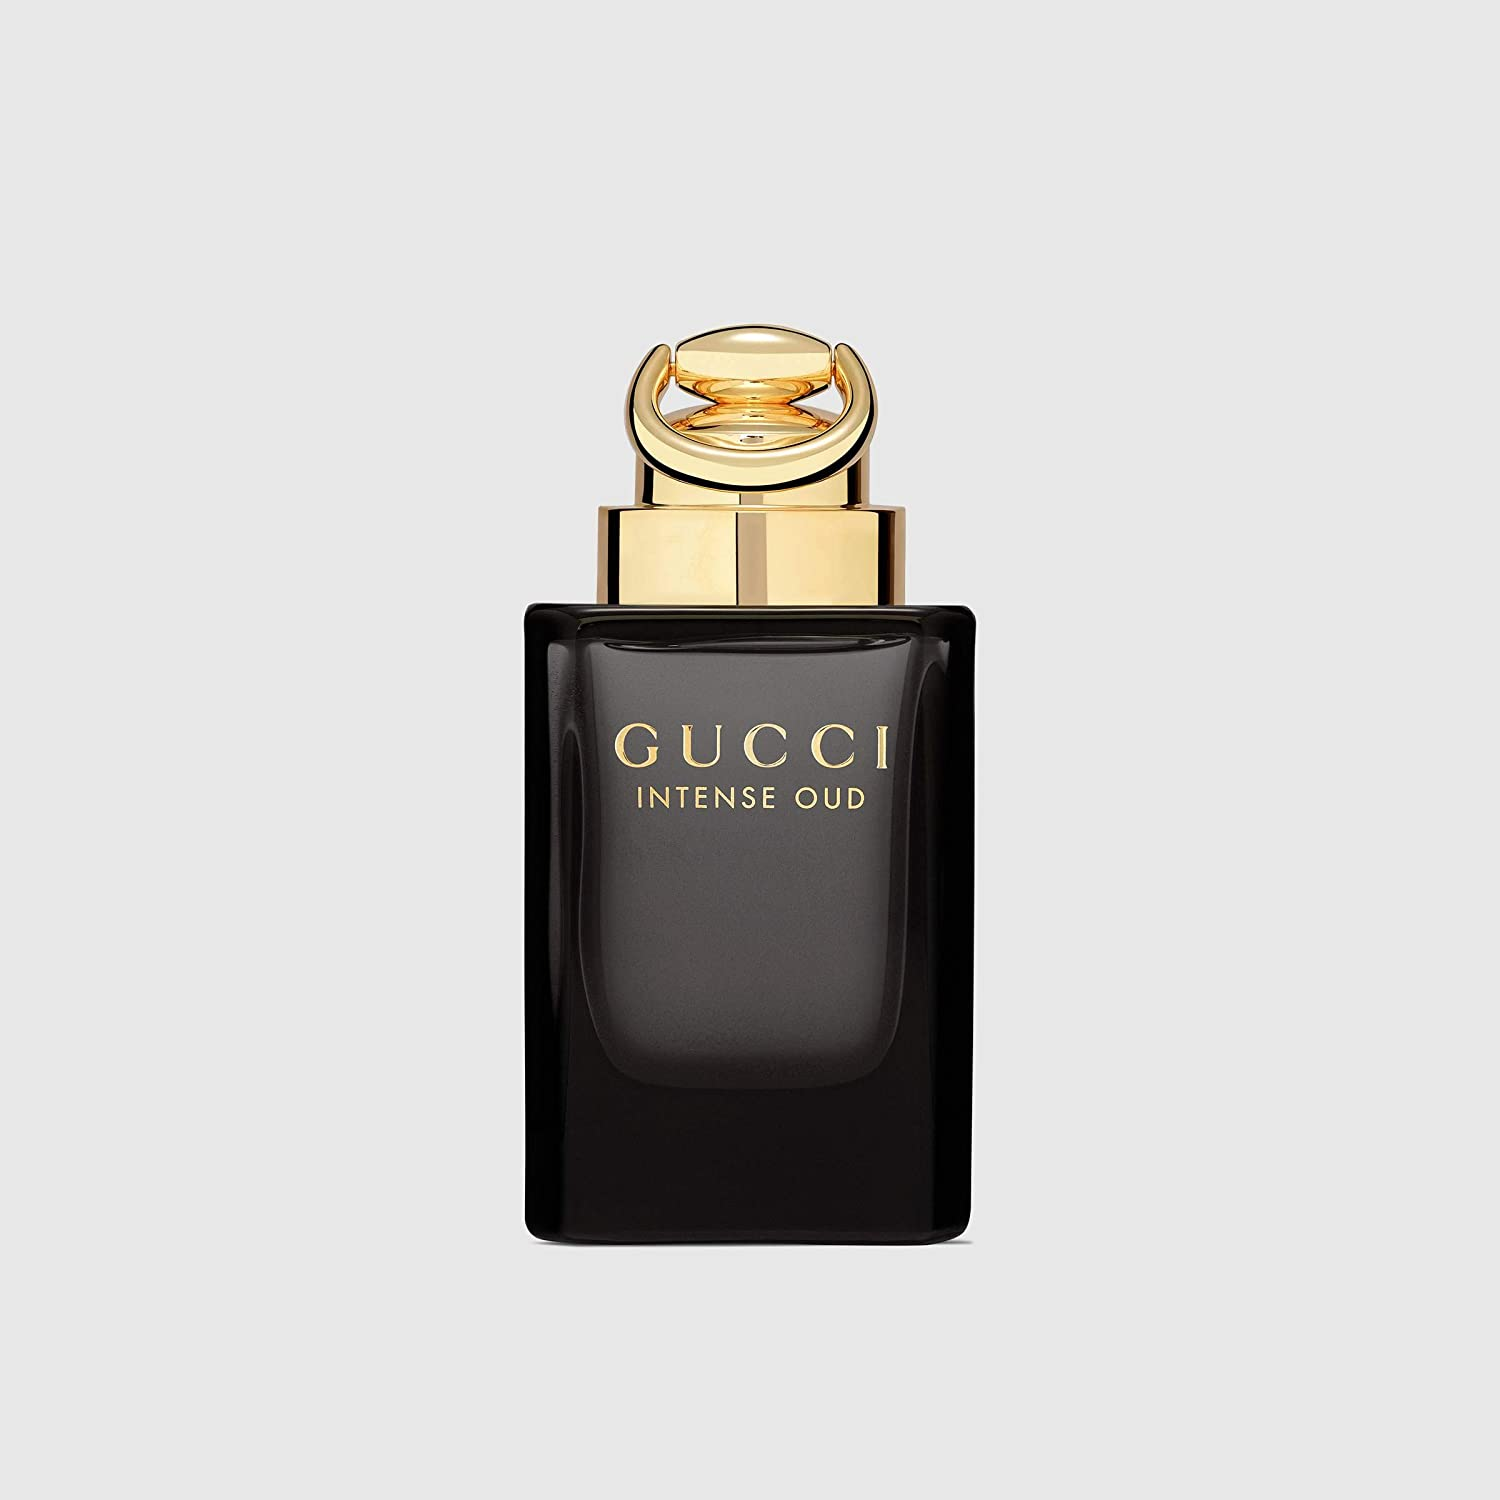 e0d65c2fb85c Buy Gucci Intense Oud EDP Online at Low Prices in India - Amazon.in